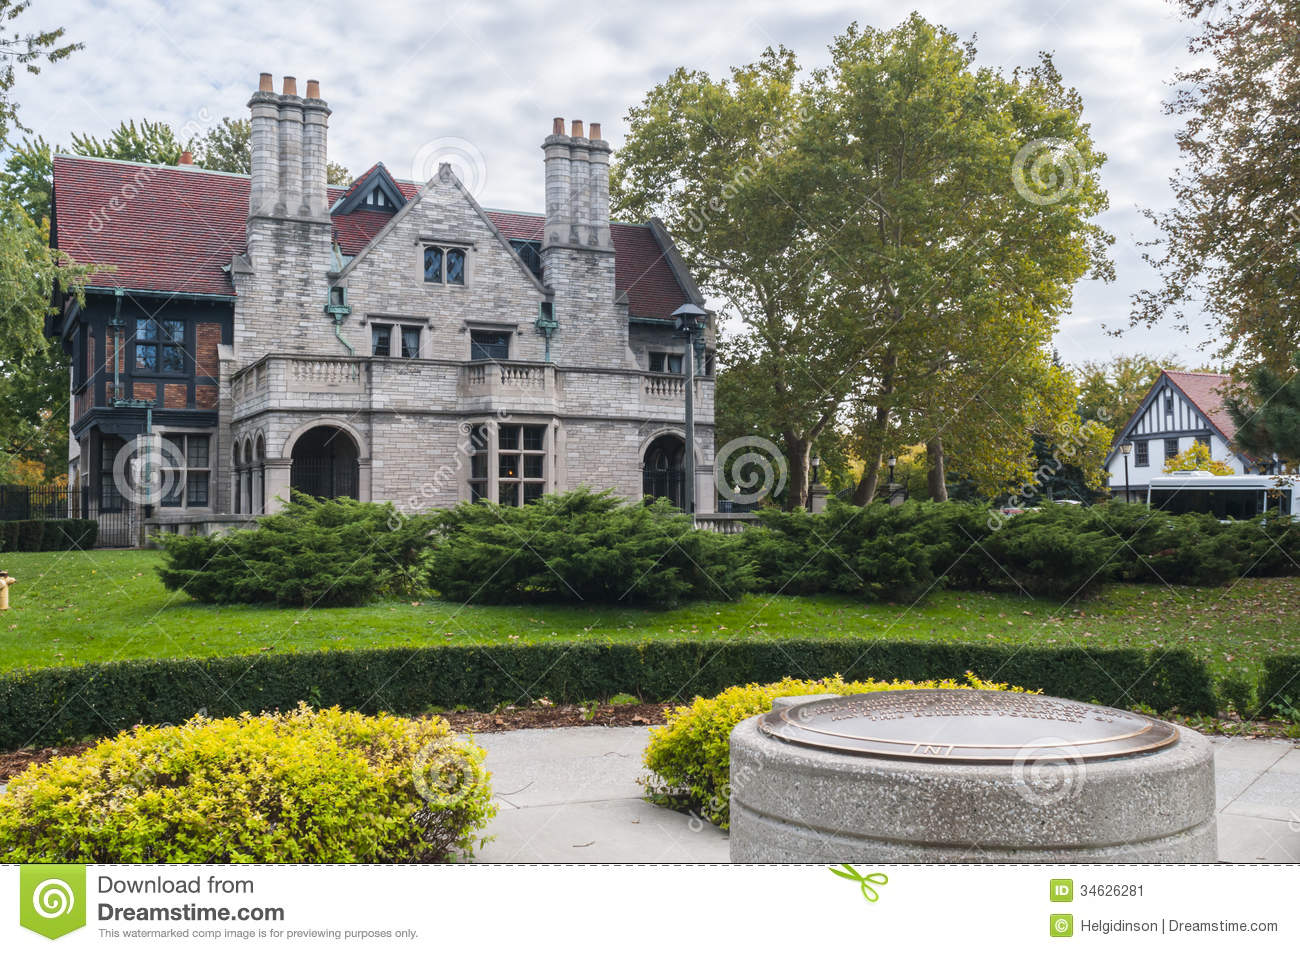 Willistead manor windsor ontario stock image image of for Building a house in ontario